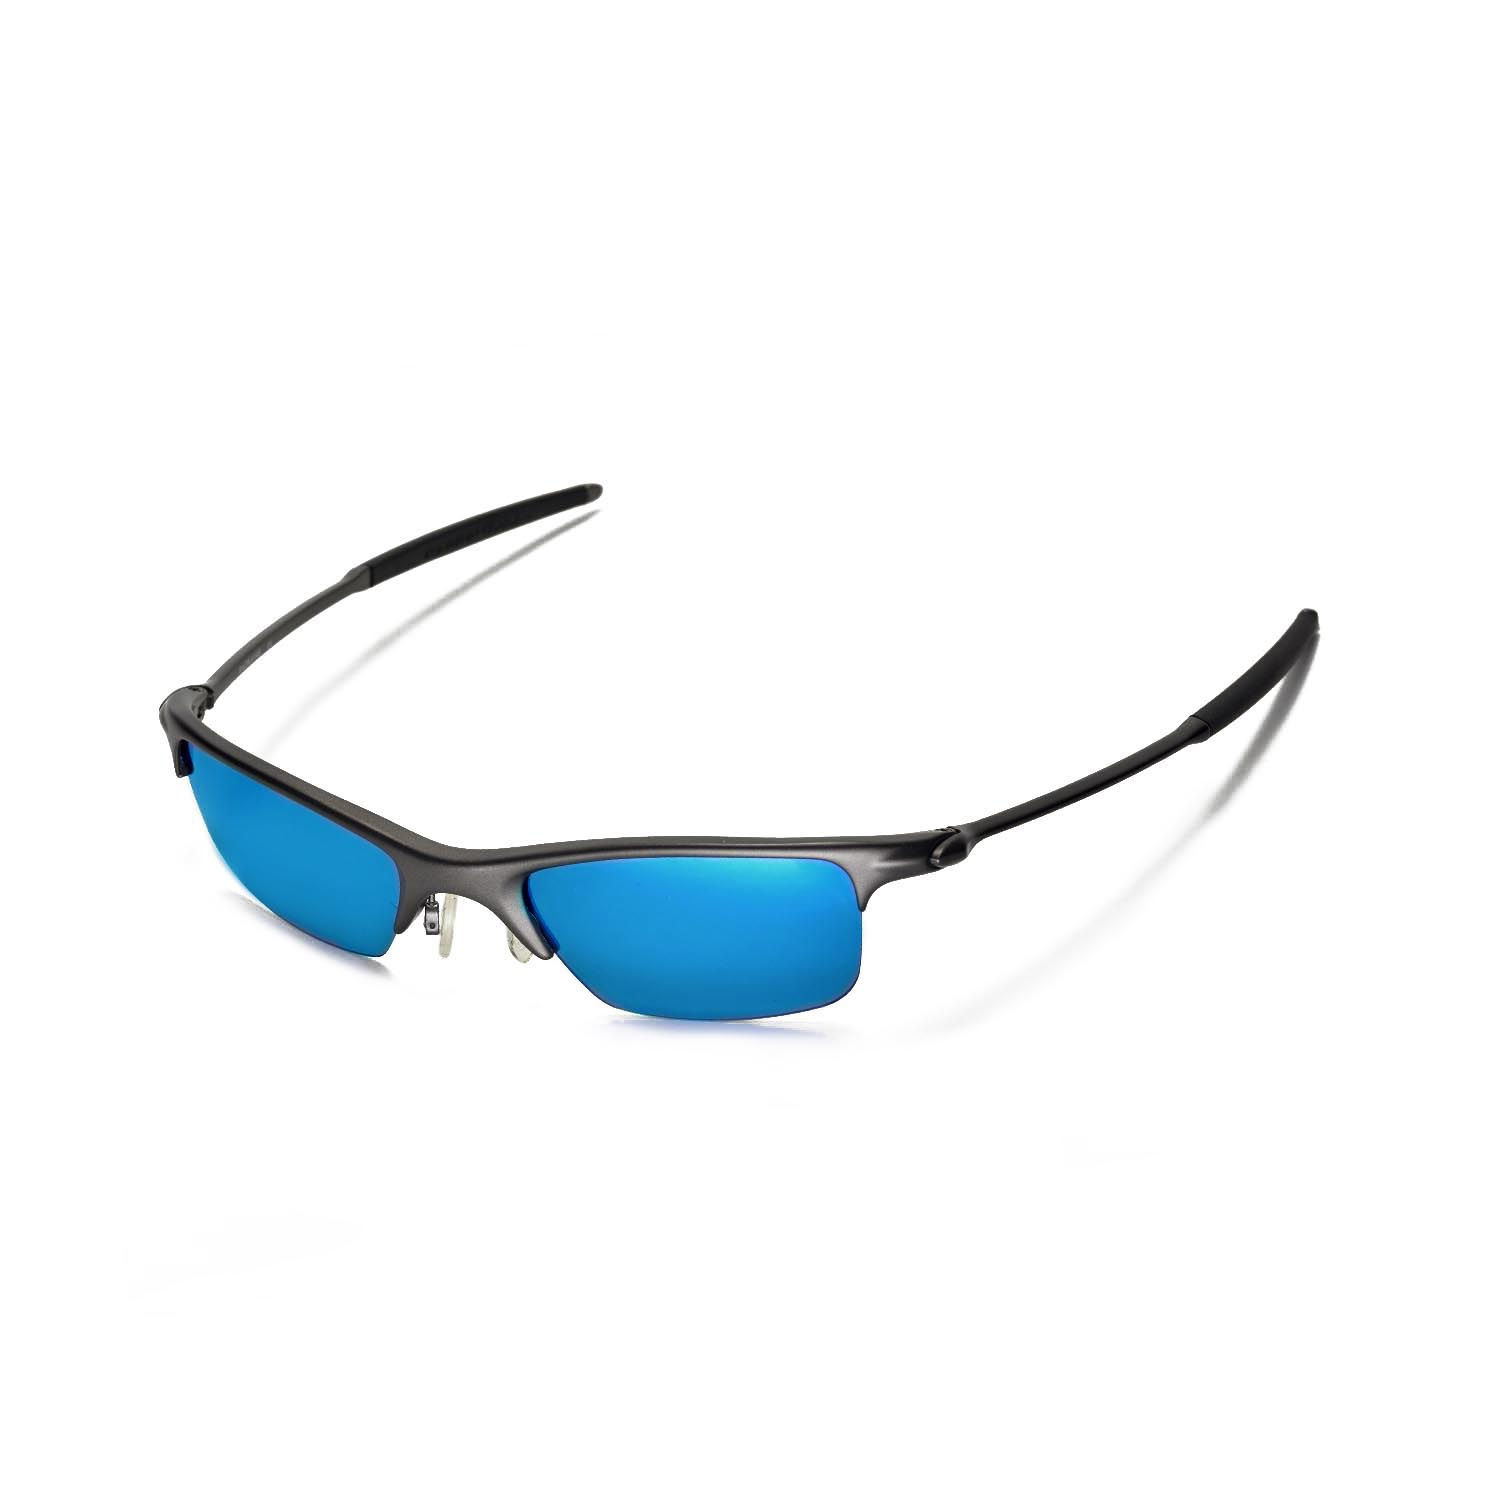 b27e65c615332 New Walleva Polarized Ice Blue Replacement Lenses For Oakley ...